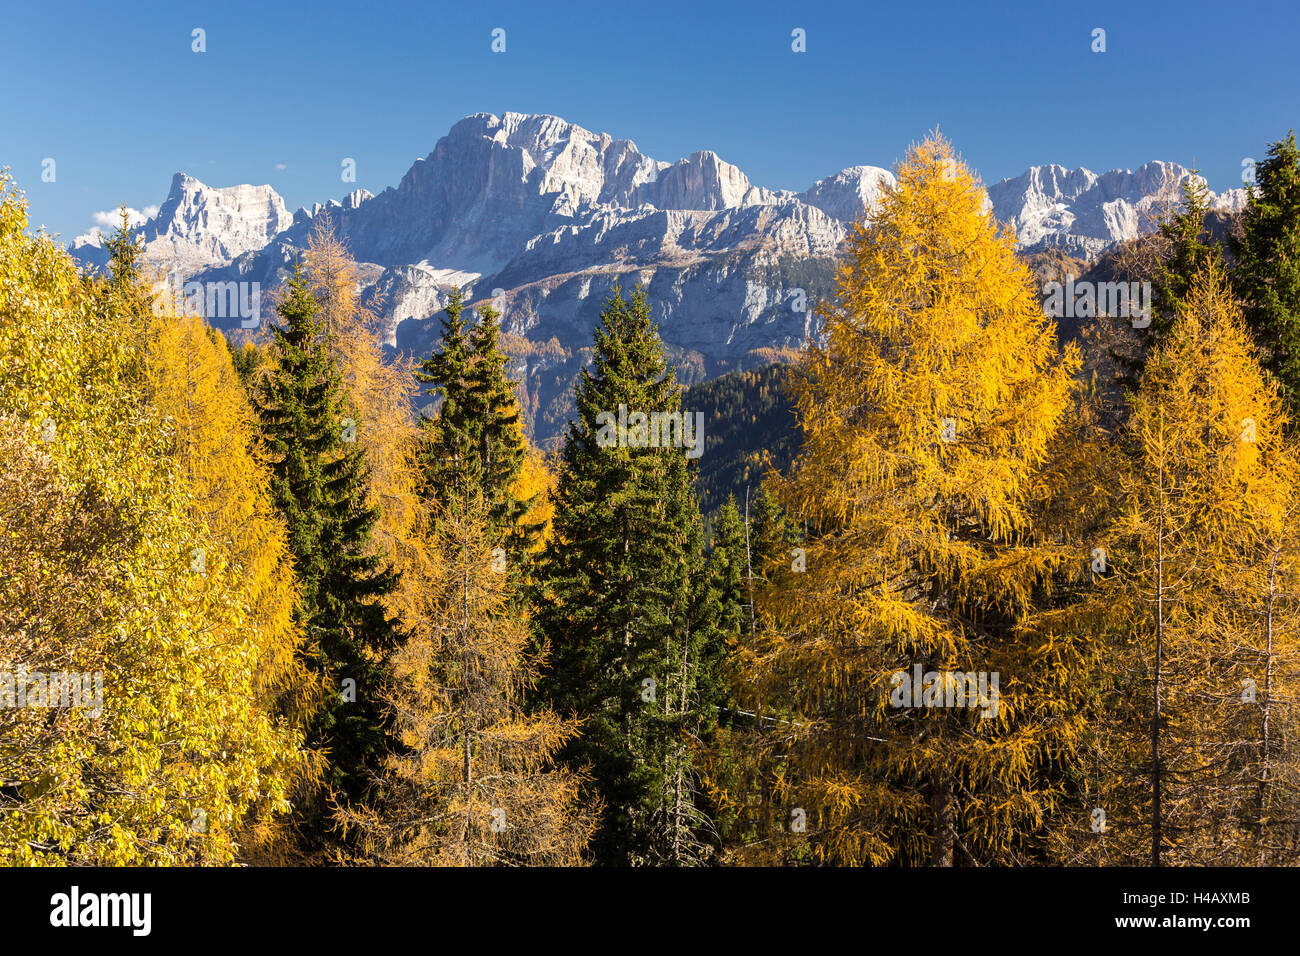 Cima Pape o Sanson, Valle di Valles, larches, Veneto, the Dolomites, Italy Stock Photo